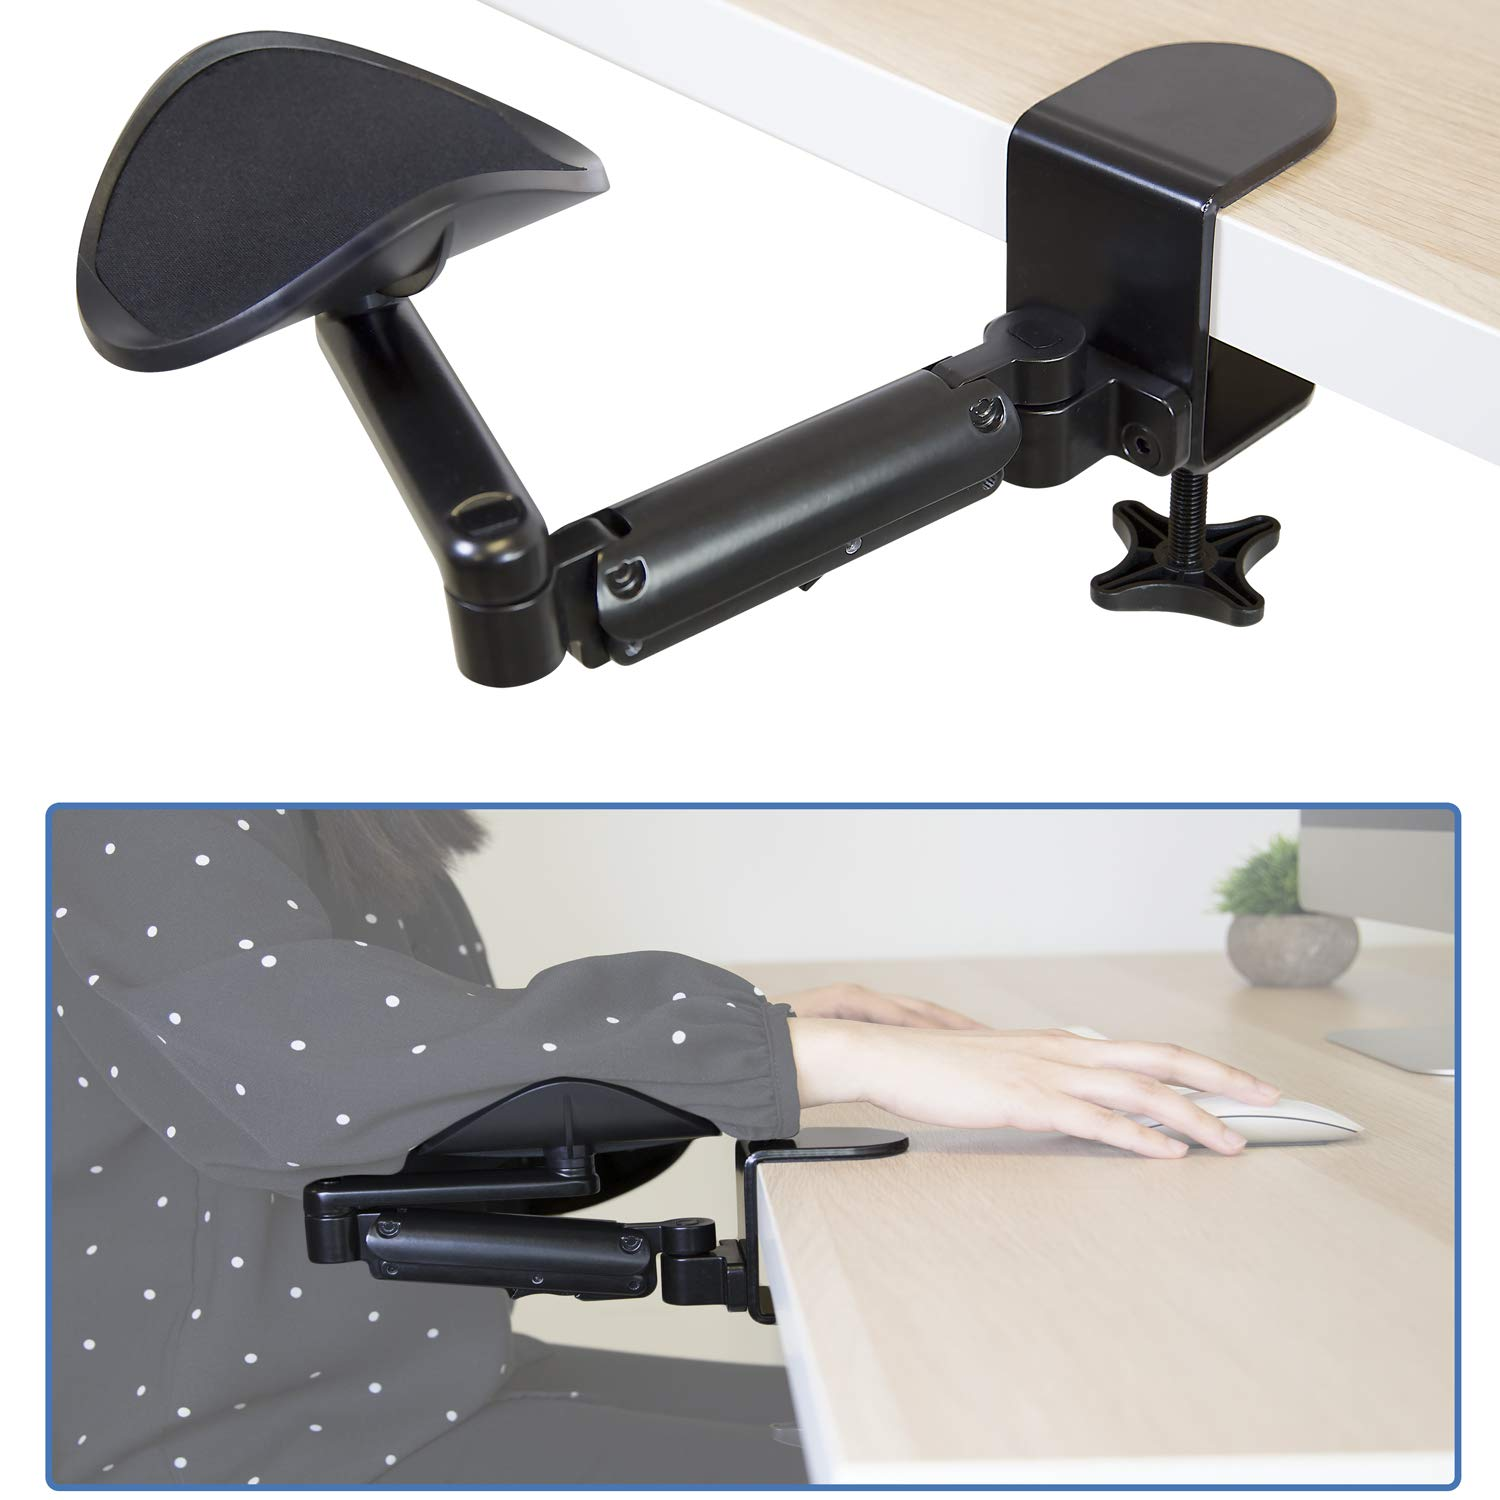 Mount-It! Adjustable Arm Rest for Desk   Ergonomic Computer Desk Arm   Height Adjustable, Full Motion Elbow Support with Clamp-On Base   Steel Construction (MI-7145) by Mount-It!